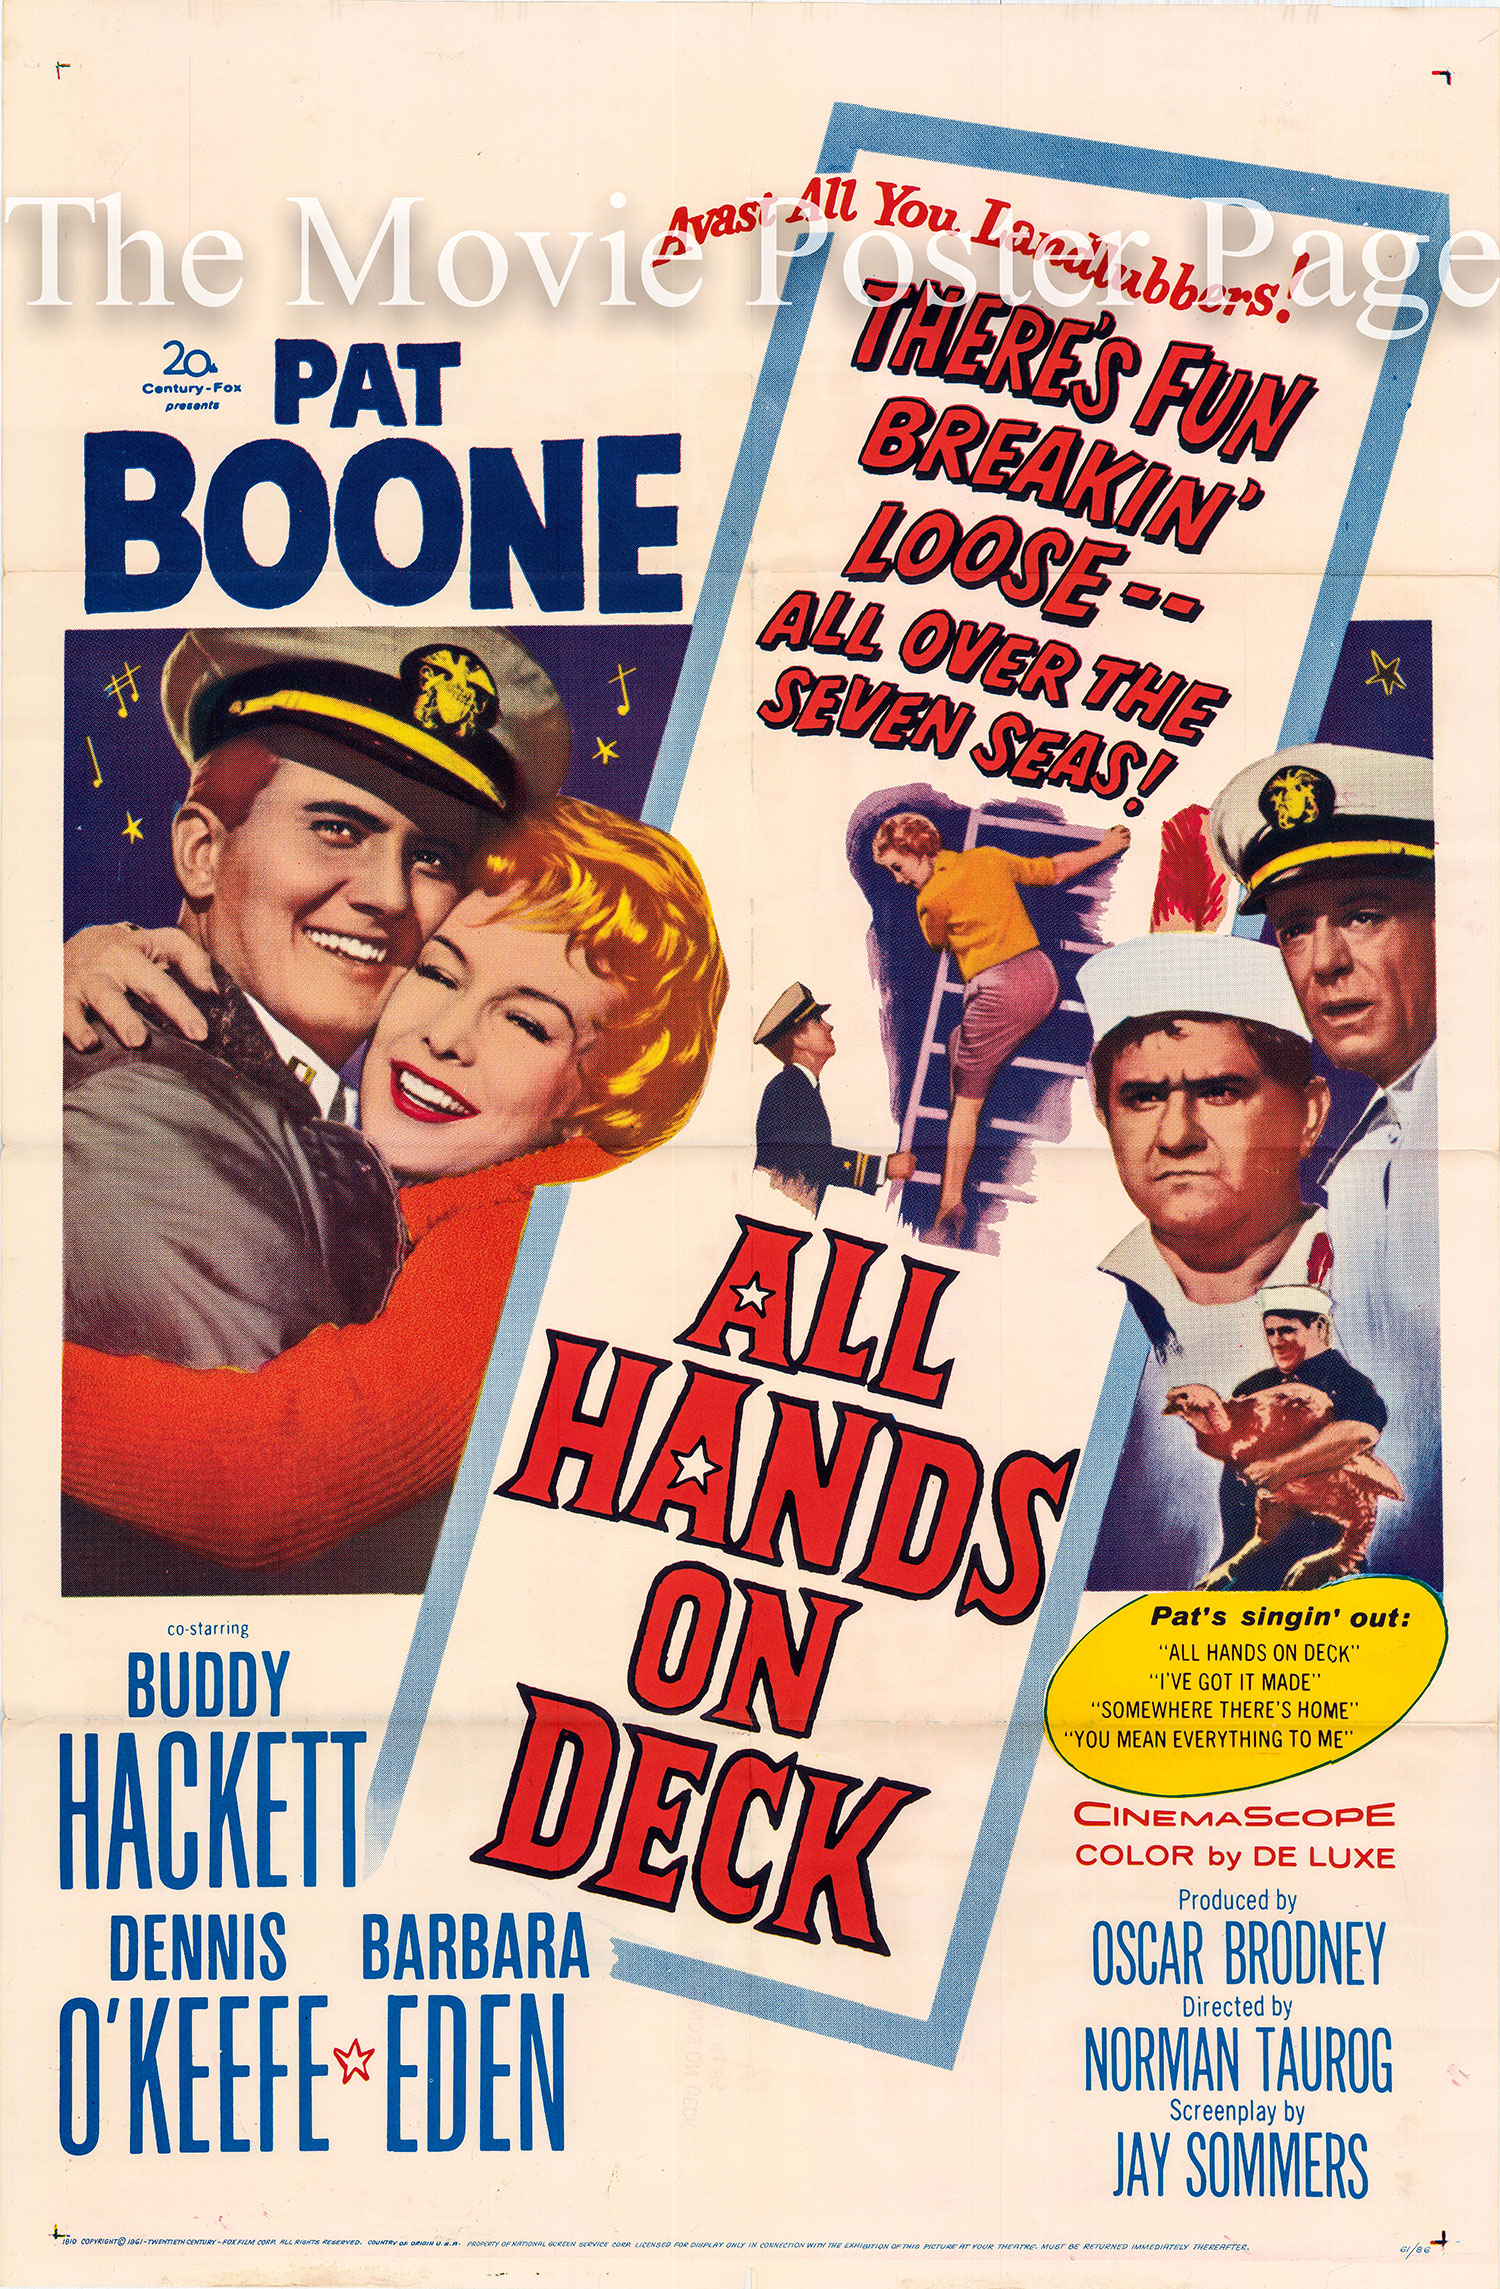 Pictured is a US promotional poster for the 1961 Norman Taurog film <i>All Hands on Deck</i> starring Pat Boone.